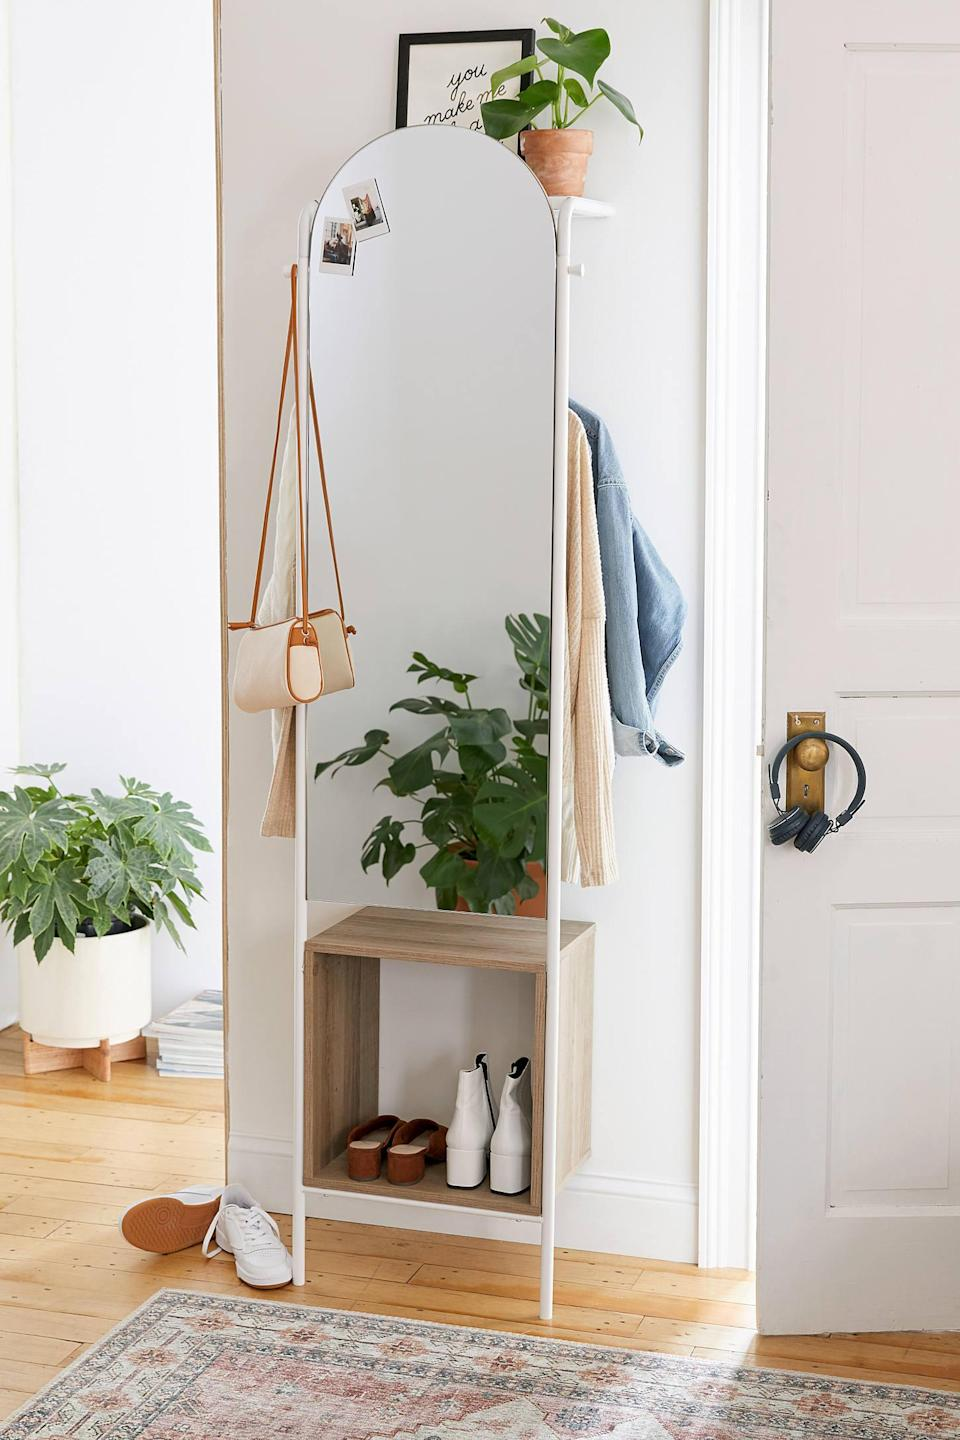 """<h2>Urban Outfitters Rooney Entryway Storage Mirror</h2><br>It's a mirror! A hanging planter! Coat storage! A shoe rack! And whether you use it as foyer organization, a bedroom staple, or sitting room decor, it's as aesthetically pleasing as it is handy. <br><br><strong>Urban Outfitters</strong> Rooney Entryway Storage Mirror, $, available at <a href=""""https://go.skimresources.com/?id=30283X879131&url=https%3A%2F%2Fwww.urbanoutfitters.com%2Fshop%2Frooney-entryway-storage-mirror%3Fcategory%3Dmirrors%26color%3D010%26type%3DREGULAR%26size%3DONE%2520SIZE%26quantity%3D1"""" rel=""""nofollow noopener"""" target=""""_blank"""" data-ylk=""""slk:Urban Outfitters"""" class=""""link rapid-noclick-resp"""">Urban Outfitters</a>"""